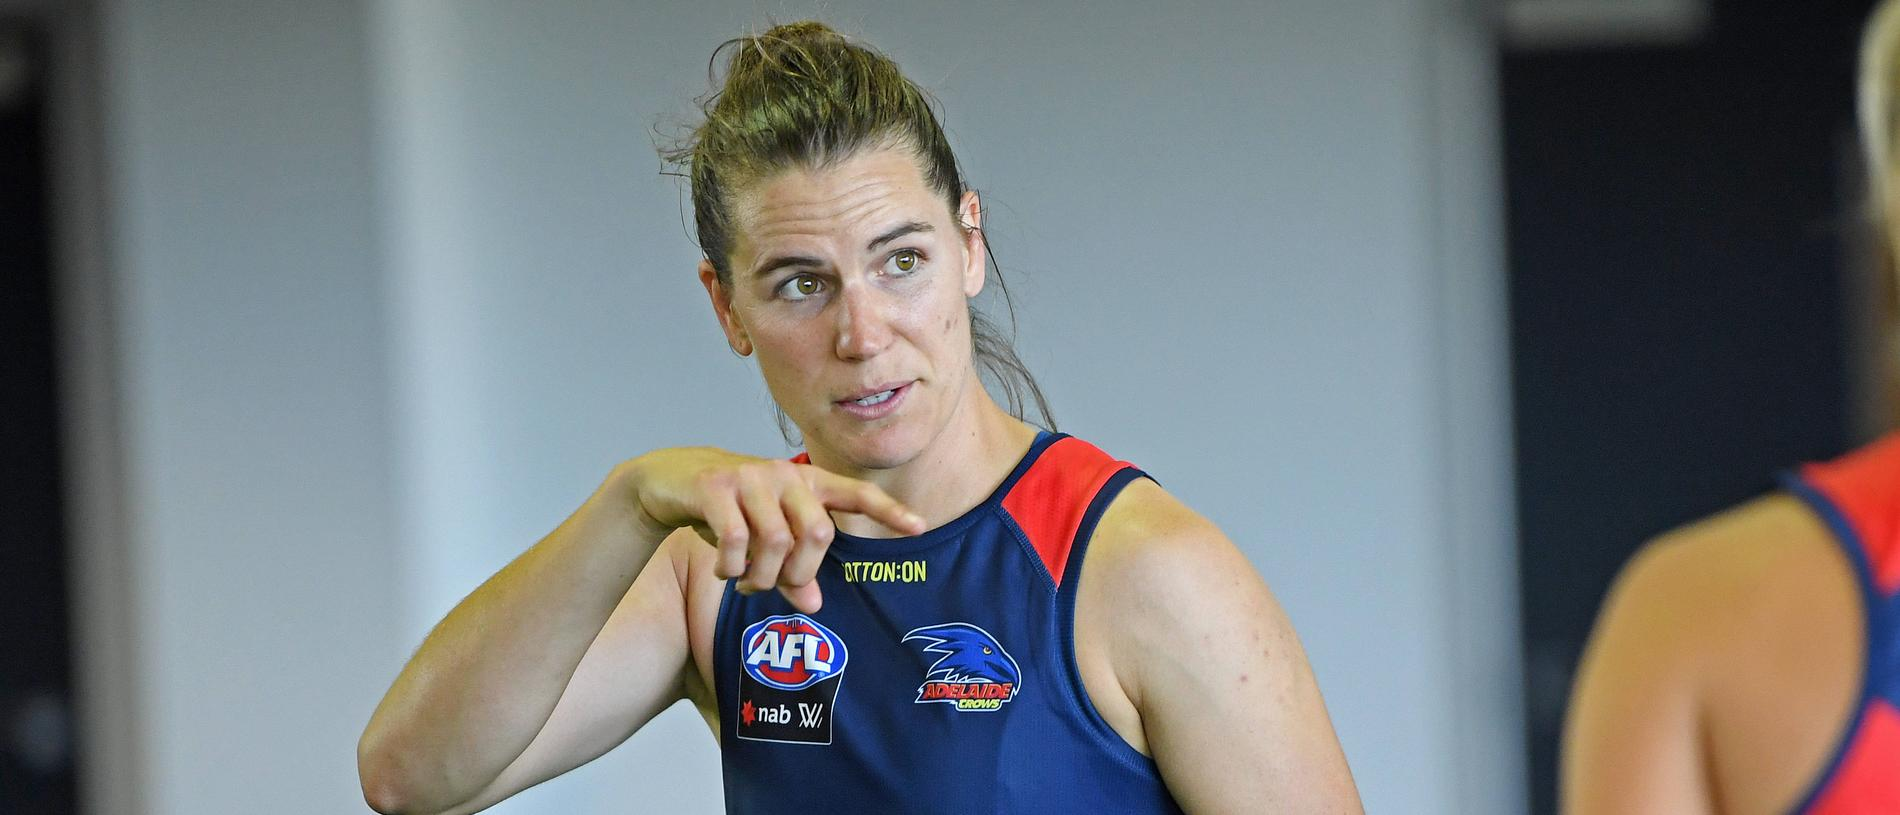 DAY ONE OF CROWS AFLW PRE-SEASON